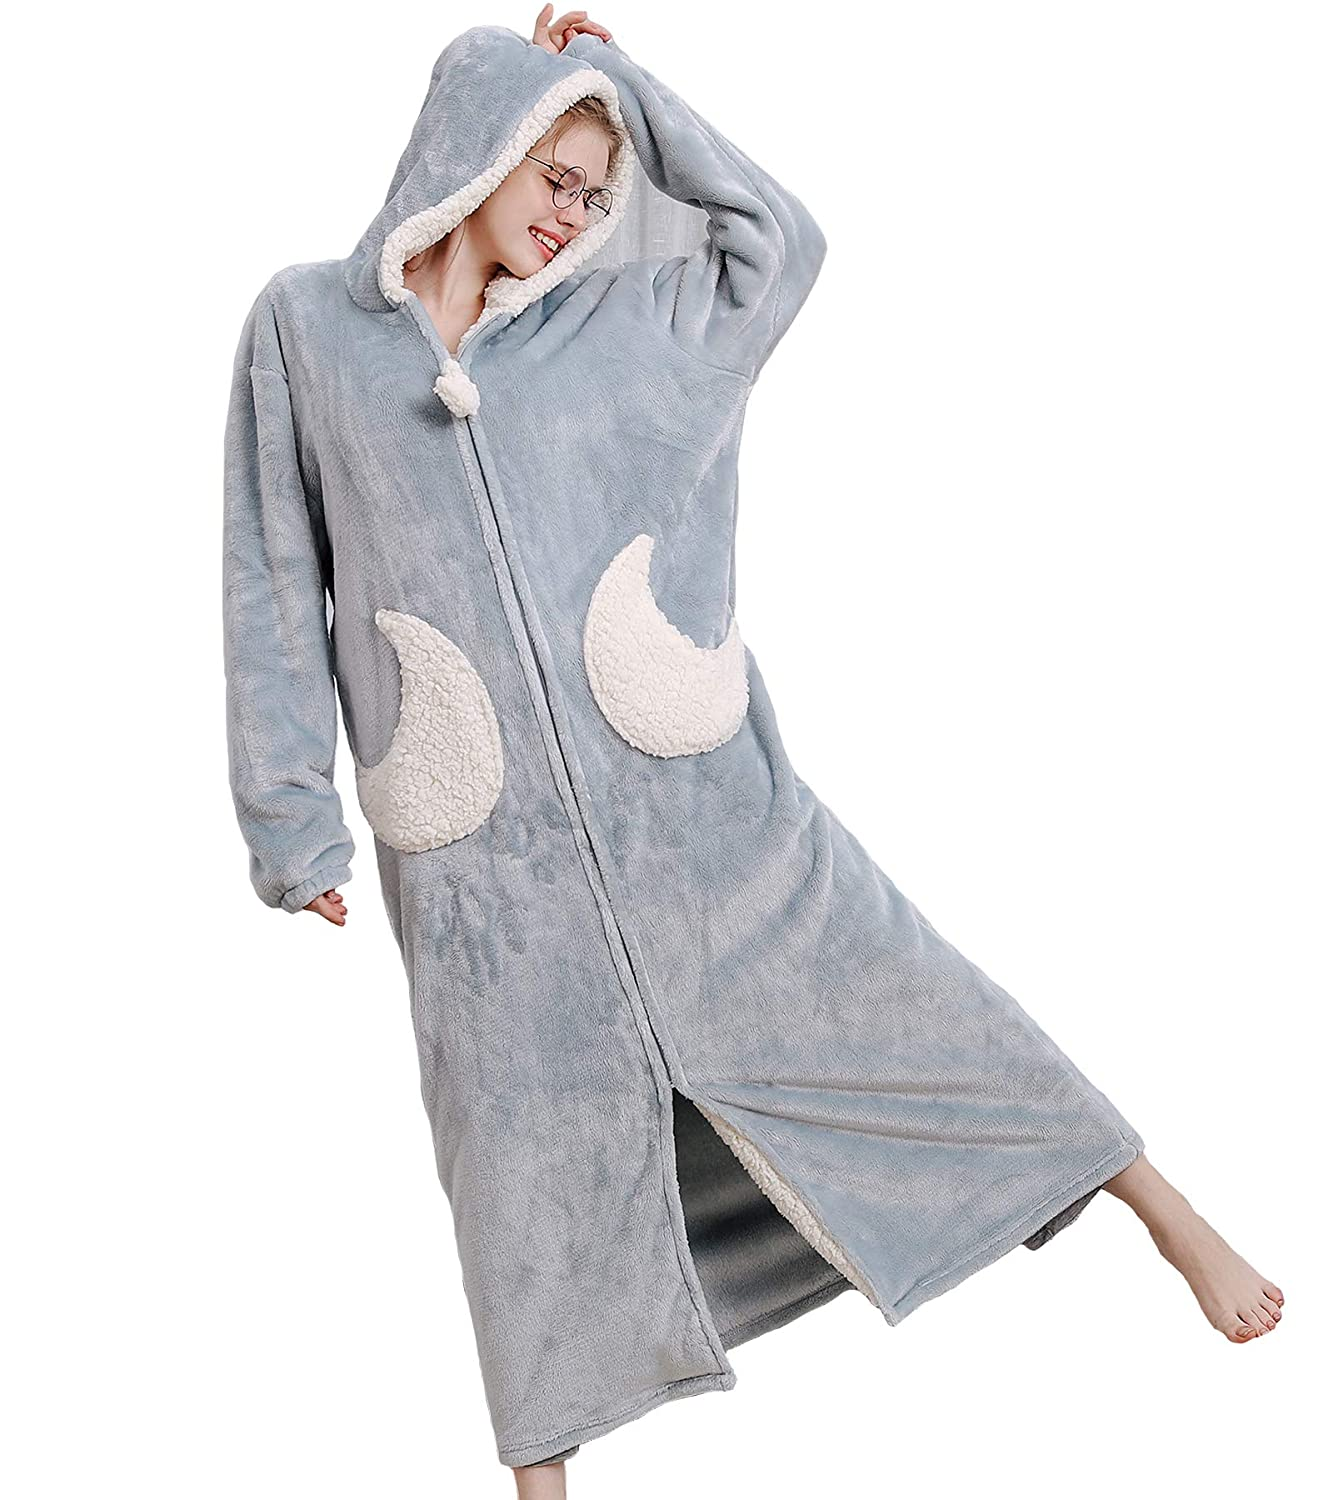 AUYUG Ladies Soft Luxurious Hooded Oversized Fleece Dressing Gown,Full Length Fluffy Winter Long Robe Plush Thicken Warm Housecoat Plus Size with Zipper for Women